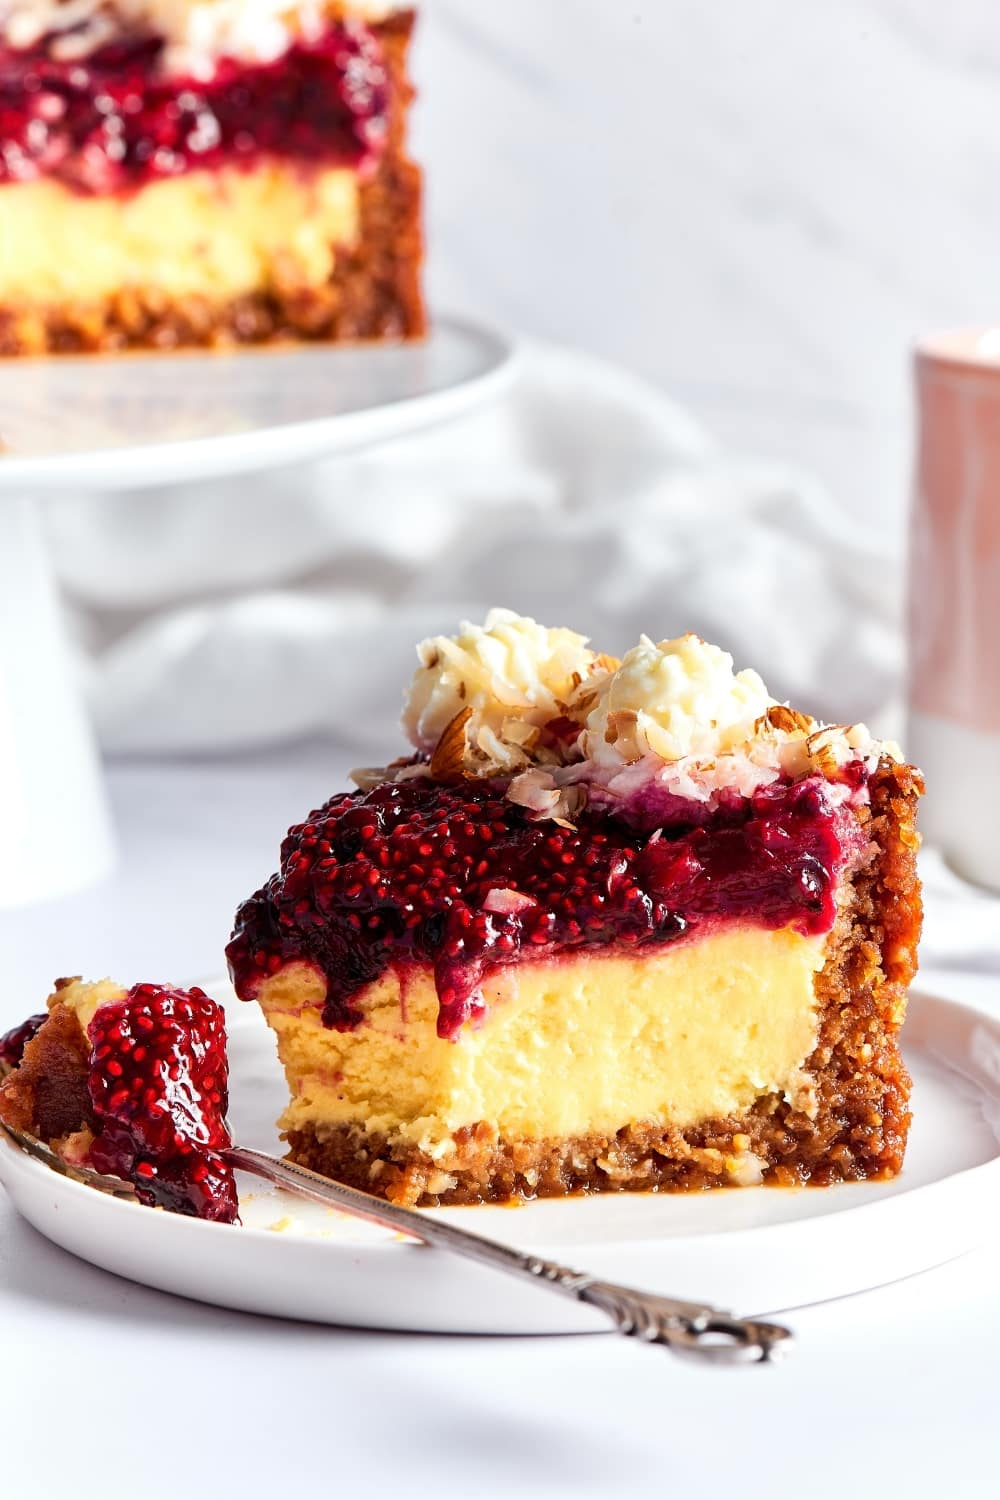 A slice of cheesecake on a white plate. There is a fork in front of the cheesecake with part of the cheesecake on it. Behind it is part of the cheesecake on a white serving tray.